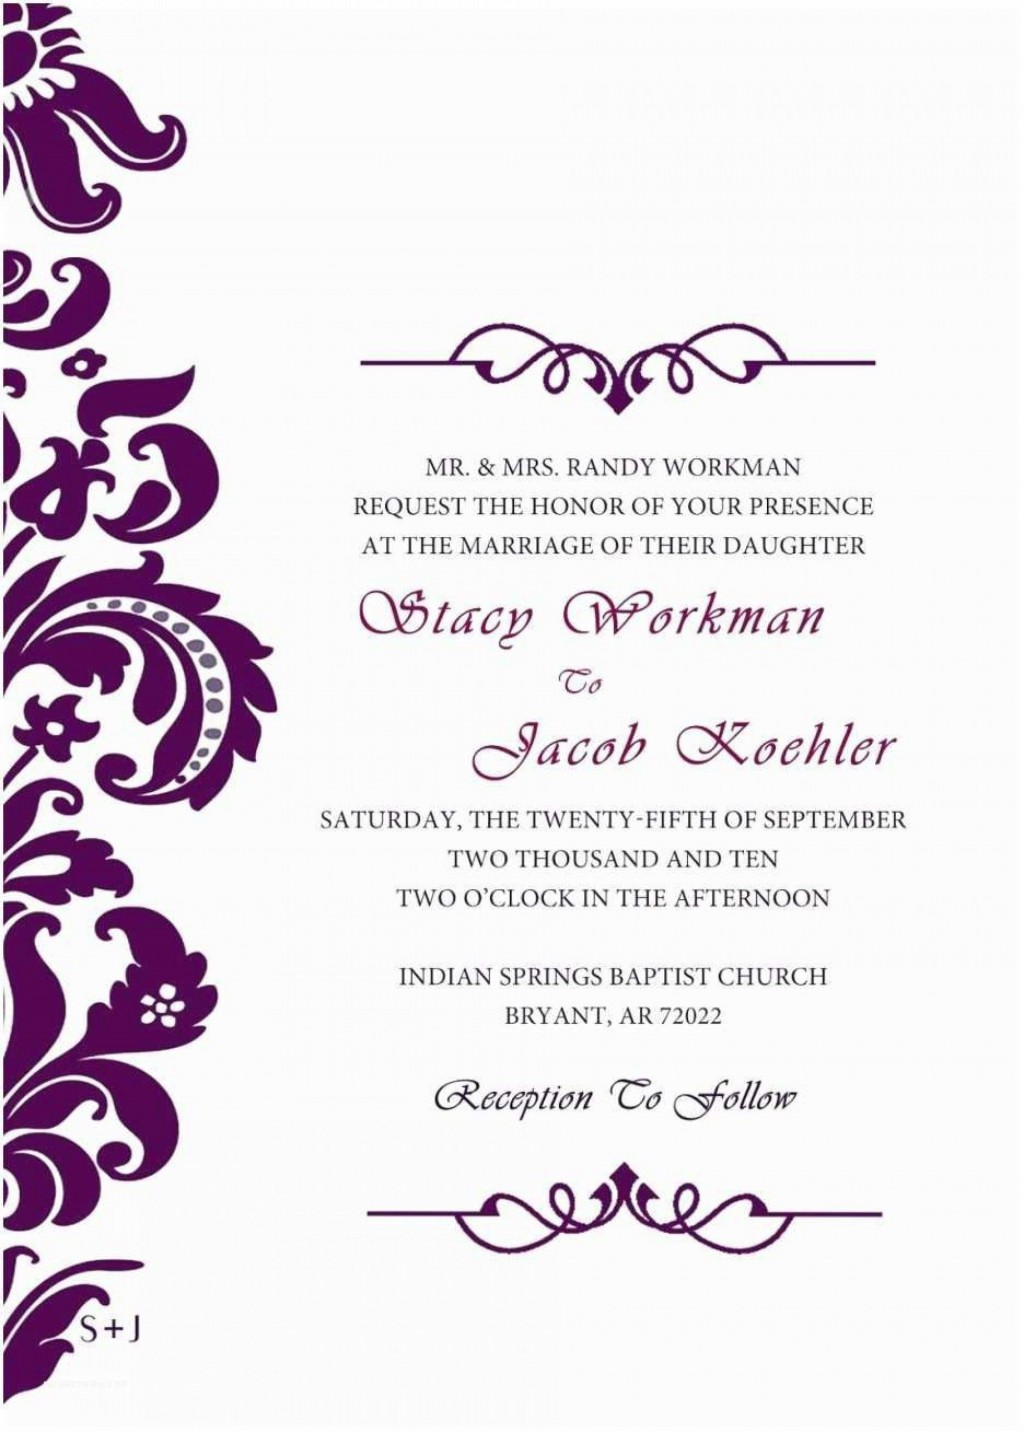 008 Excellent Free Online Indian Invitation Template High Resolution  Templates Engagement Card Maker WeddingLarge